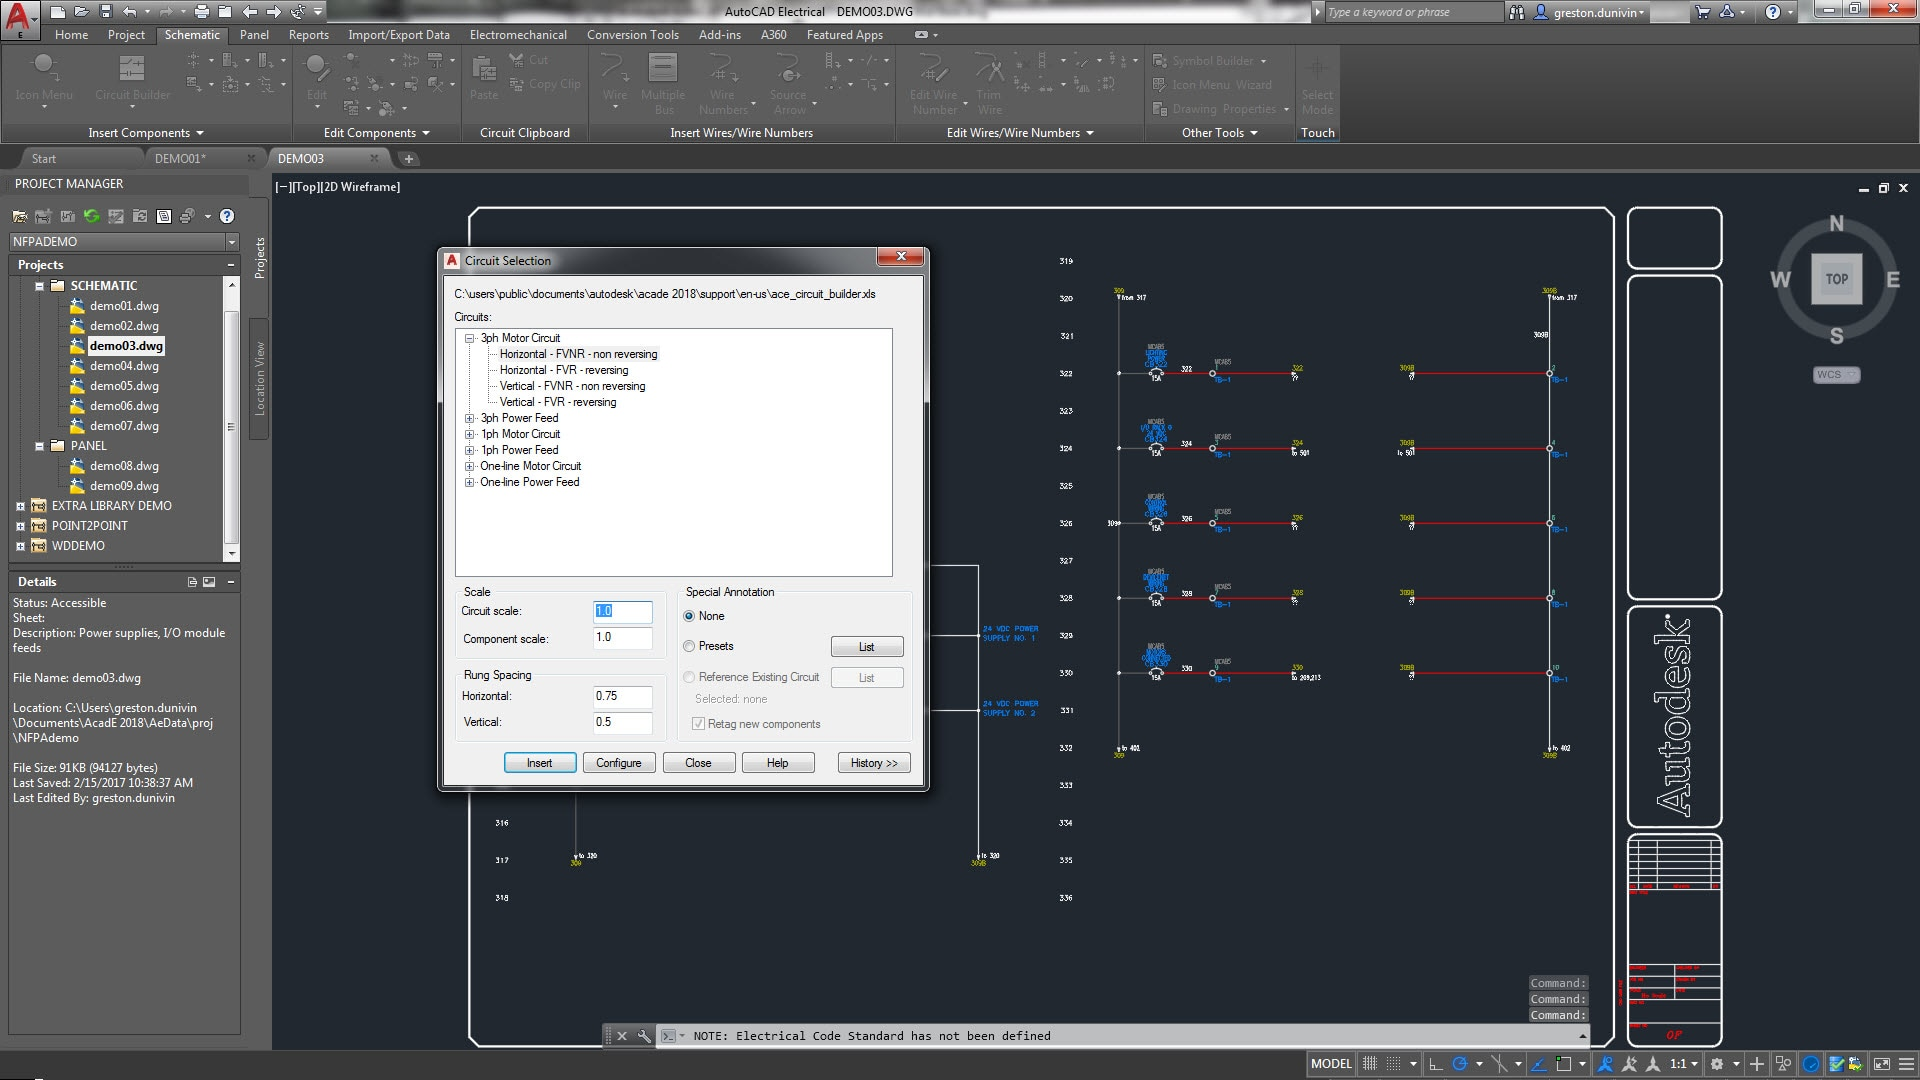 Autocad Electrical Toolset Design Software Create Circuits Online The Lets You And Reuse